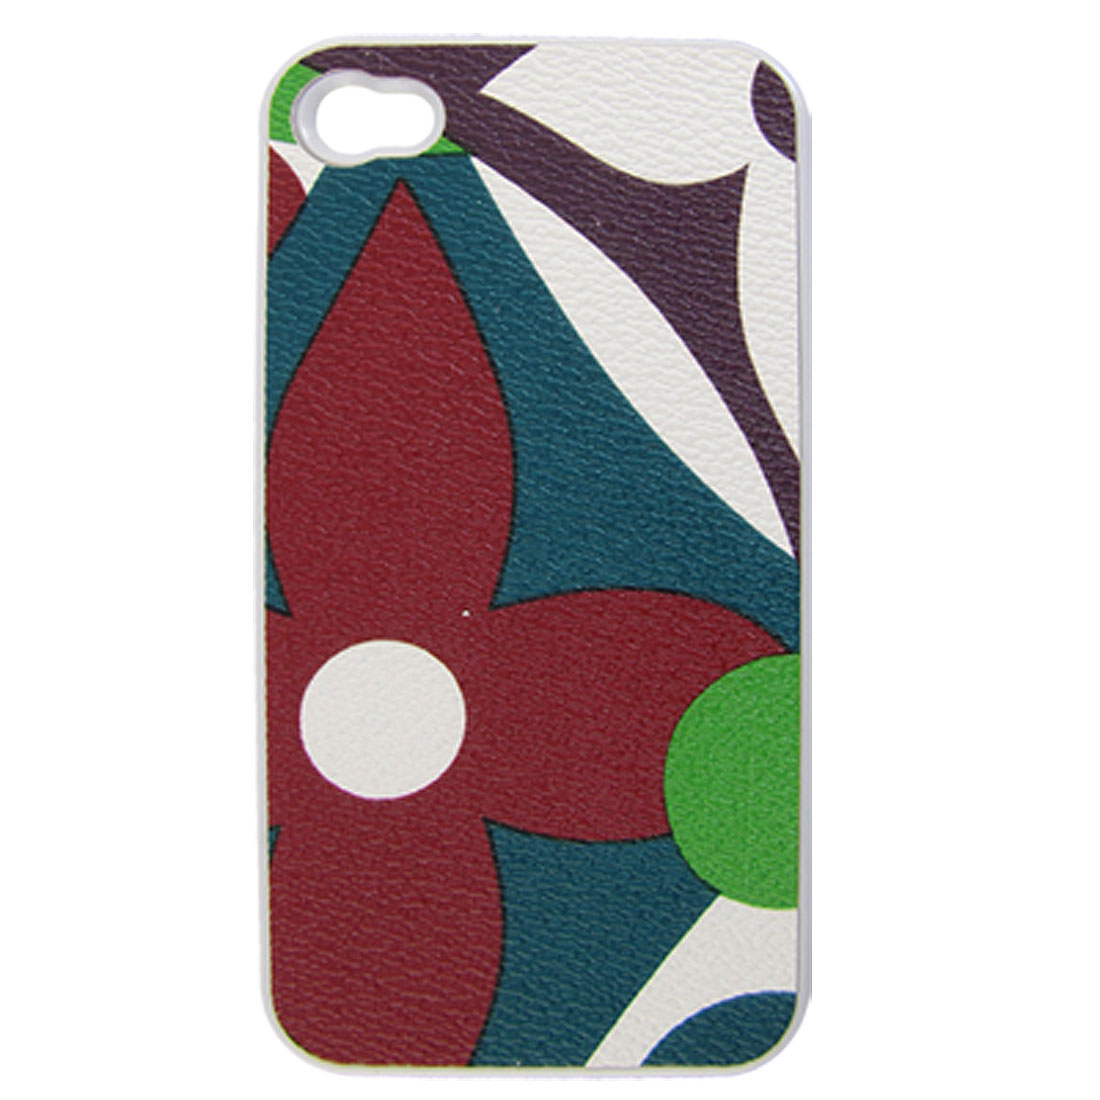 Red Blue Floral Hard Back Case Cover Protector for iPhone 4 4S 4G 4GS